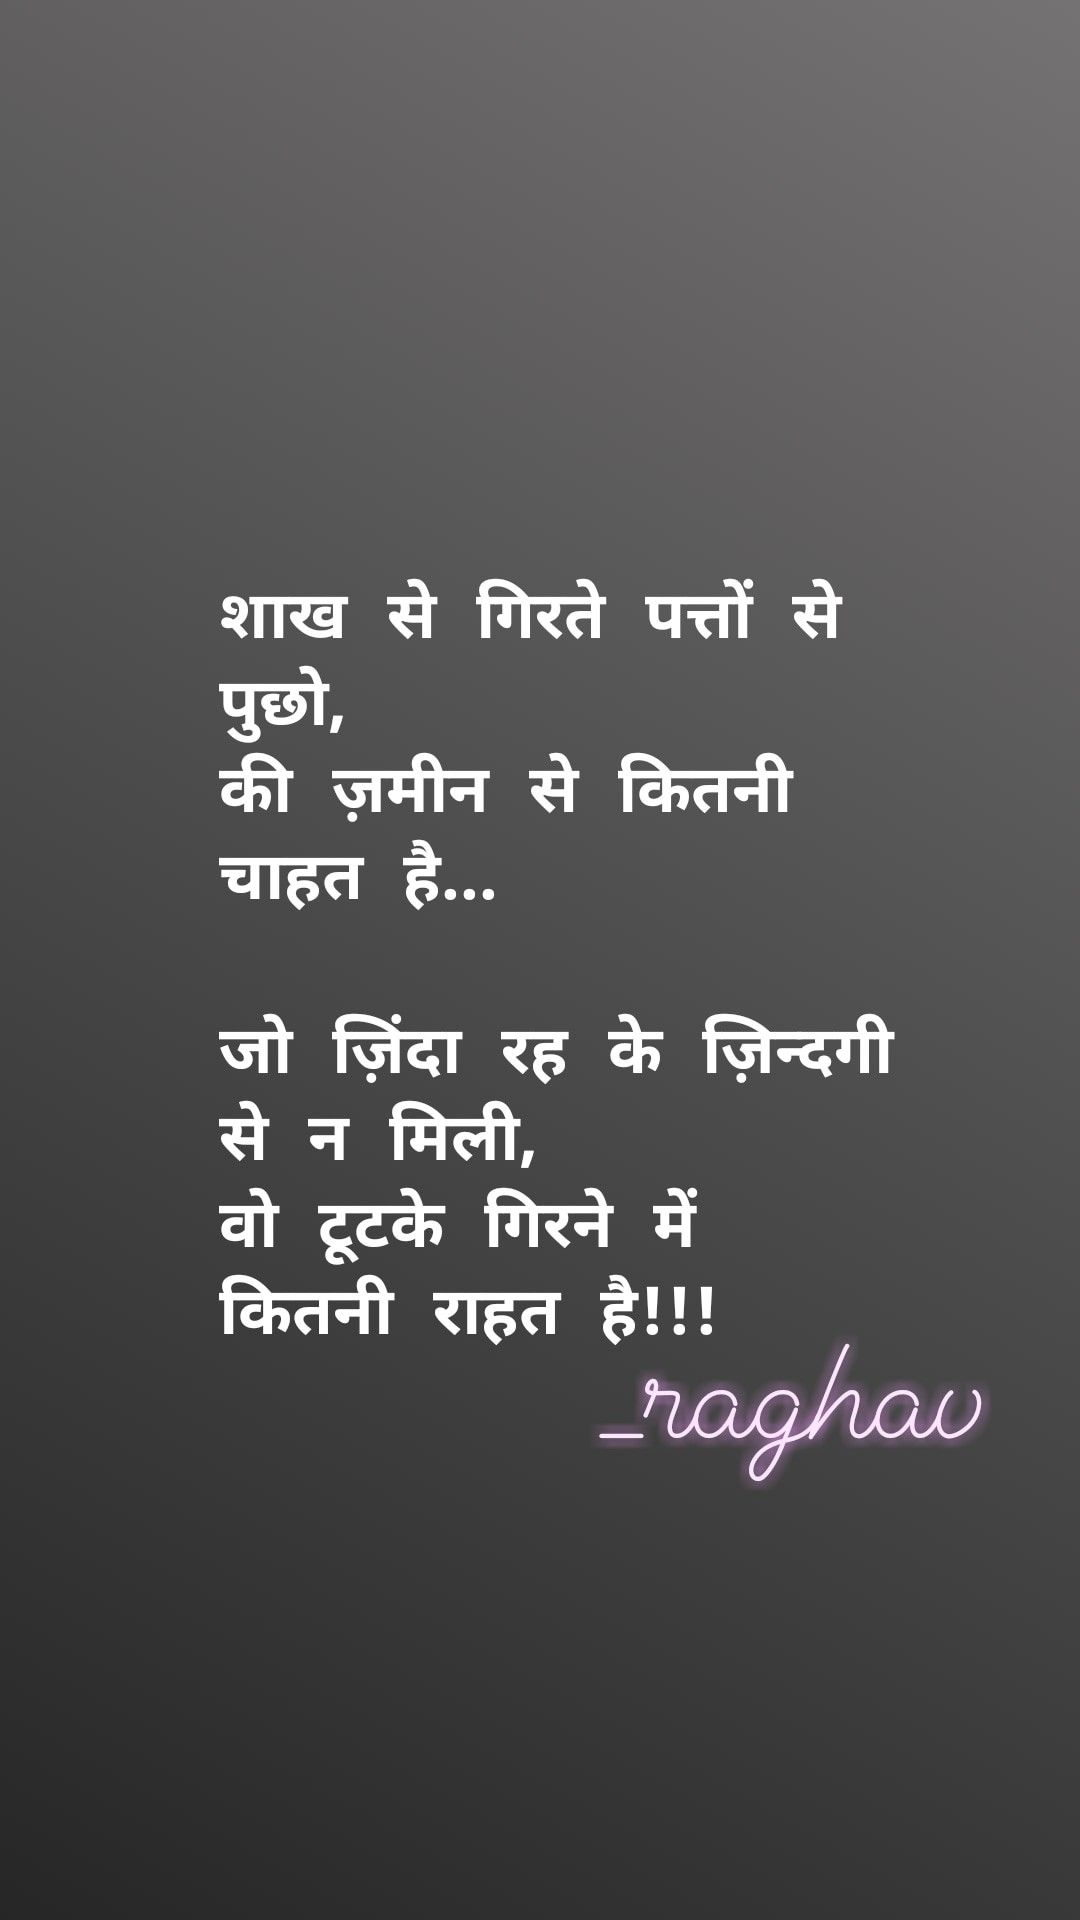 Pin by Raghav Rachit Sharma on my writing (With images ...